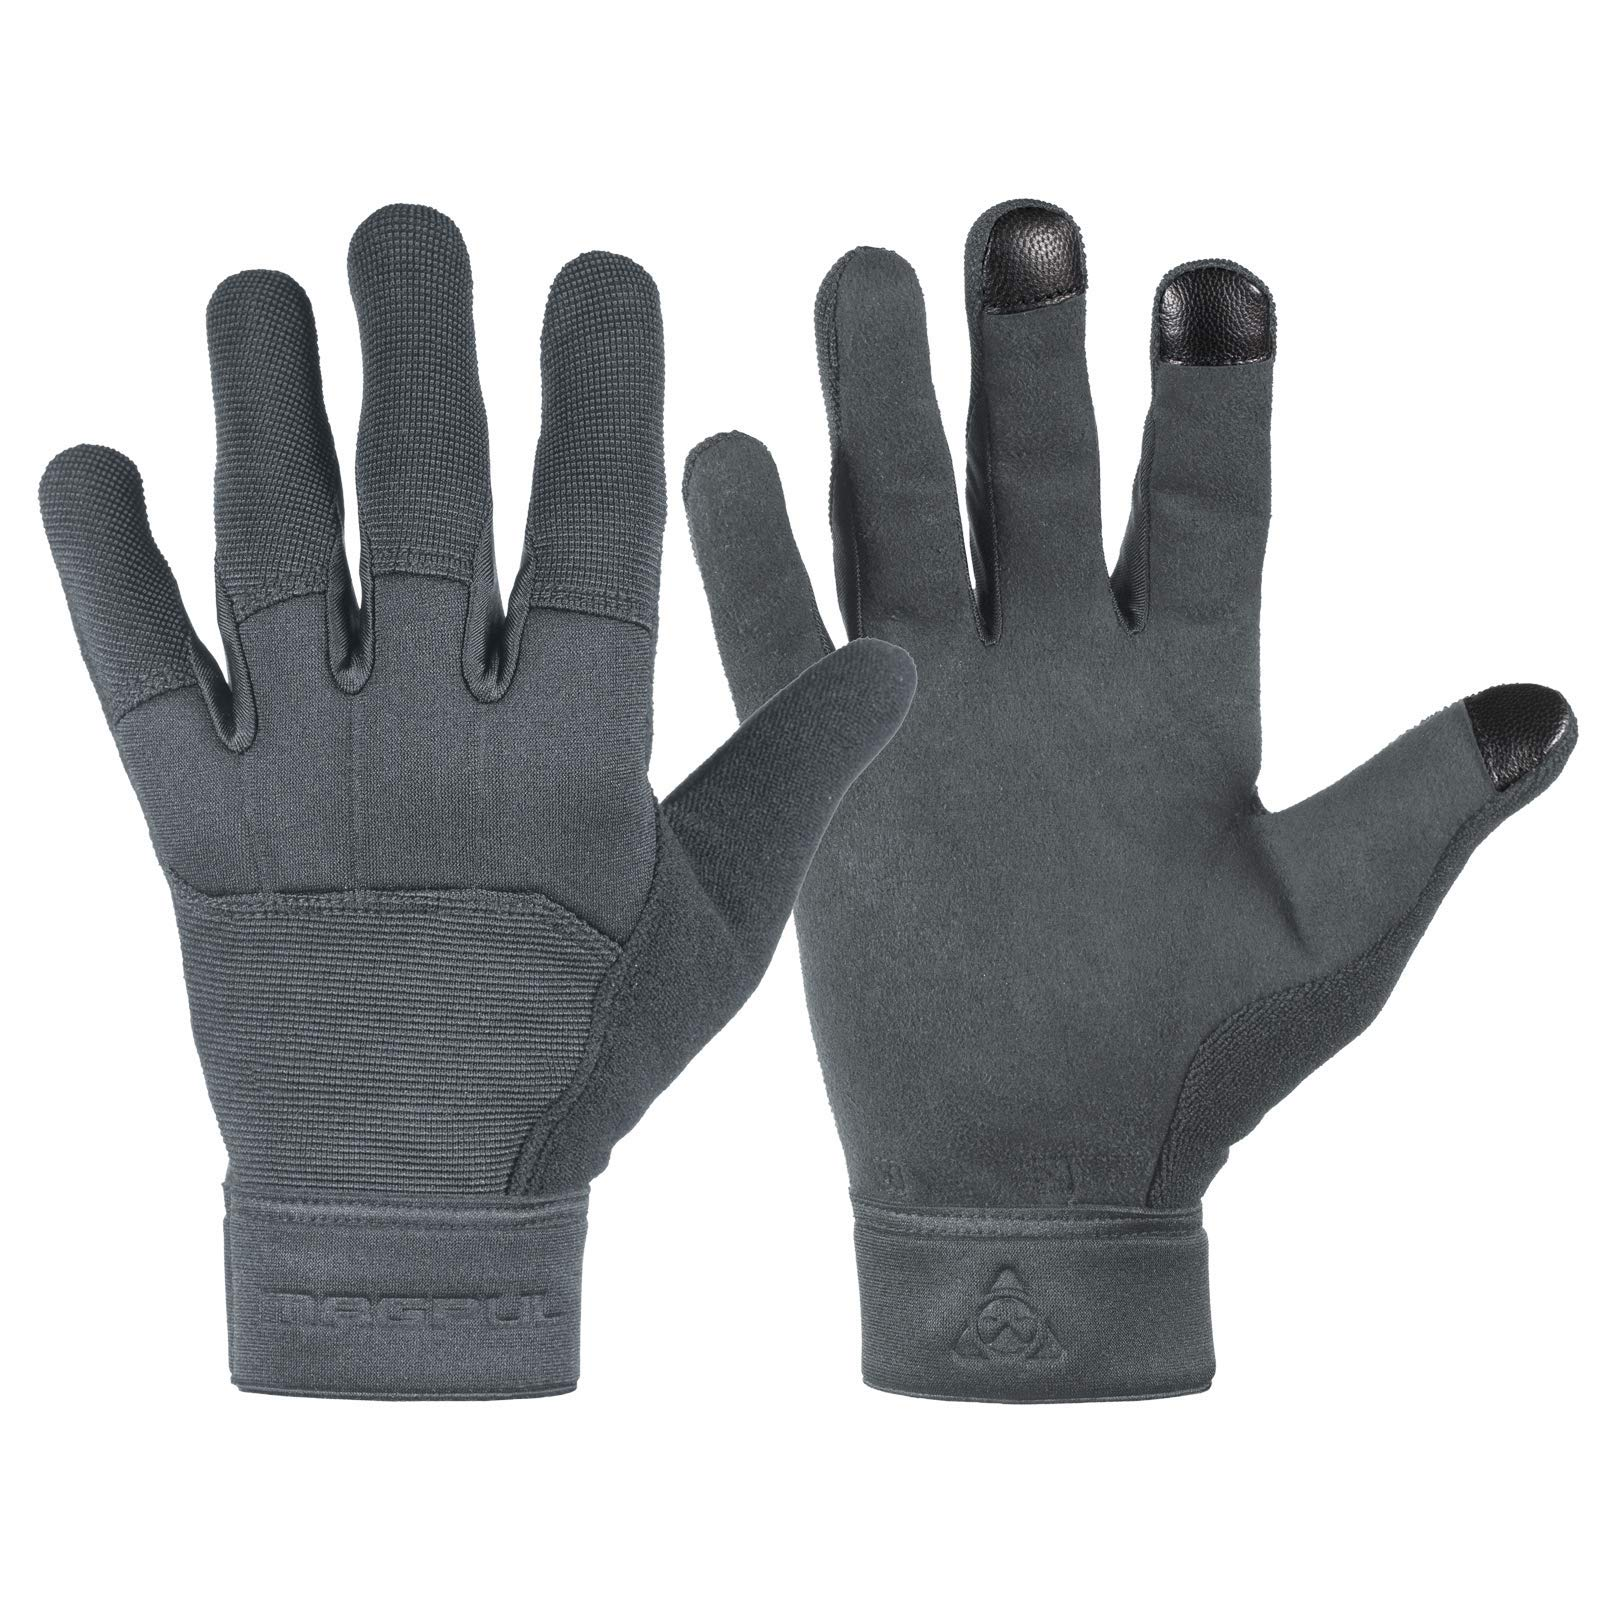 Magpul Core Technical Lightweight Work Gloves, Charcoal, XX-Large by Magpul